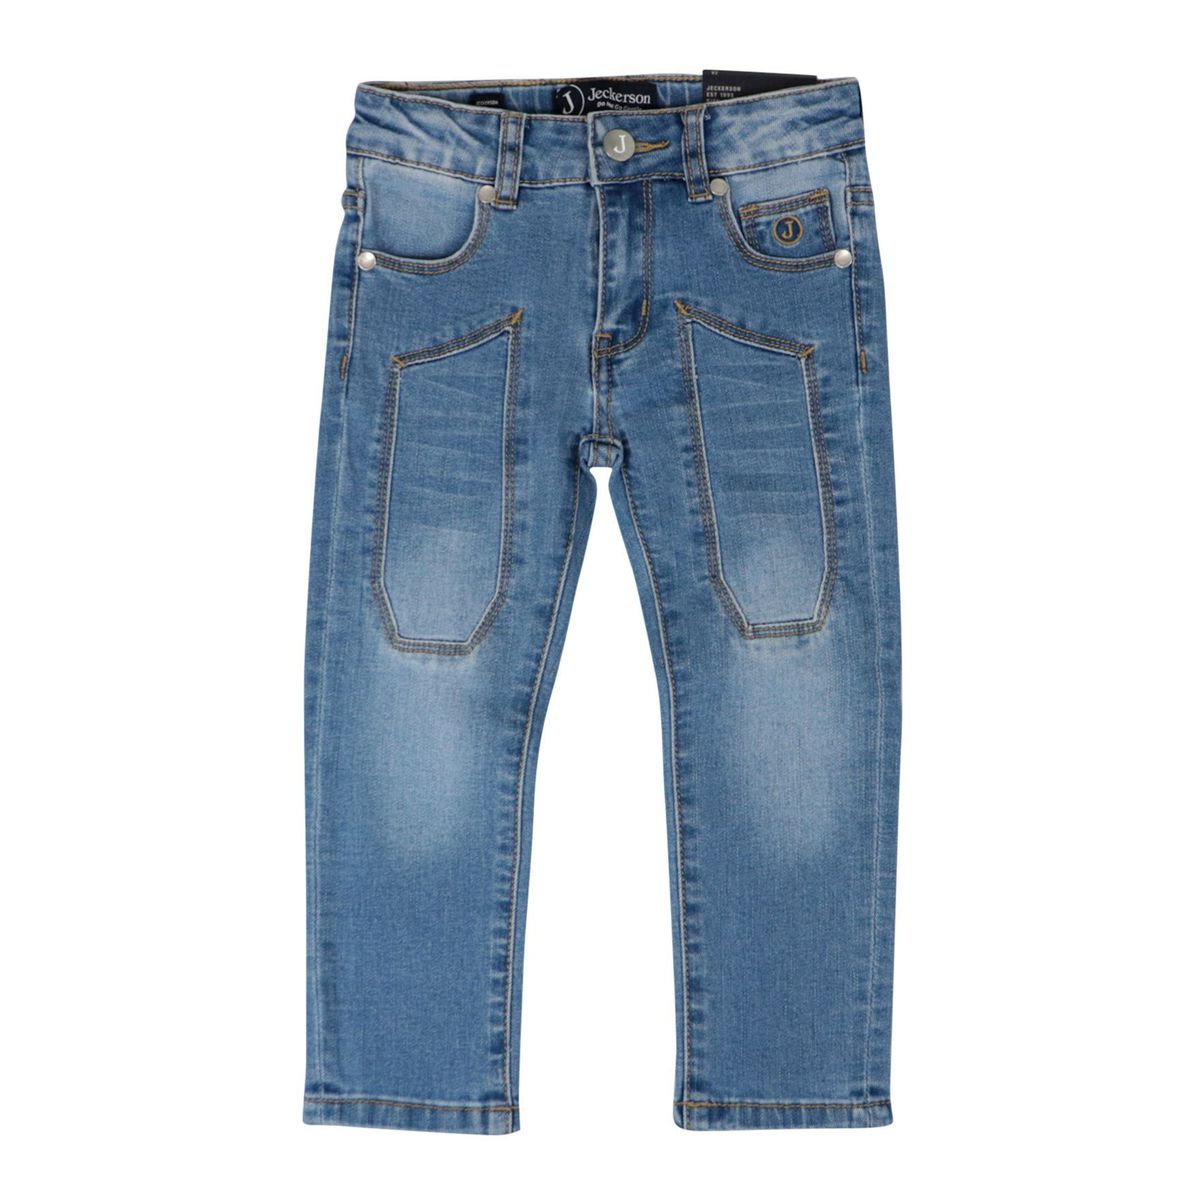 5 pocket jeans with patch Medium denim Jeckerson